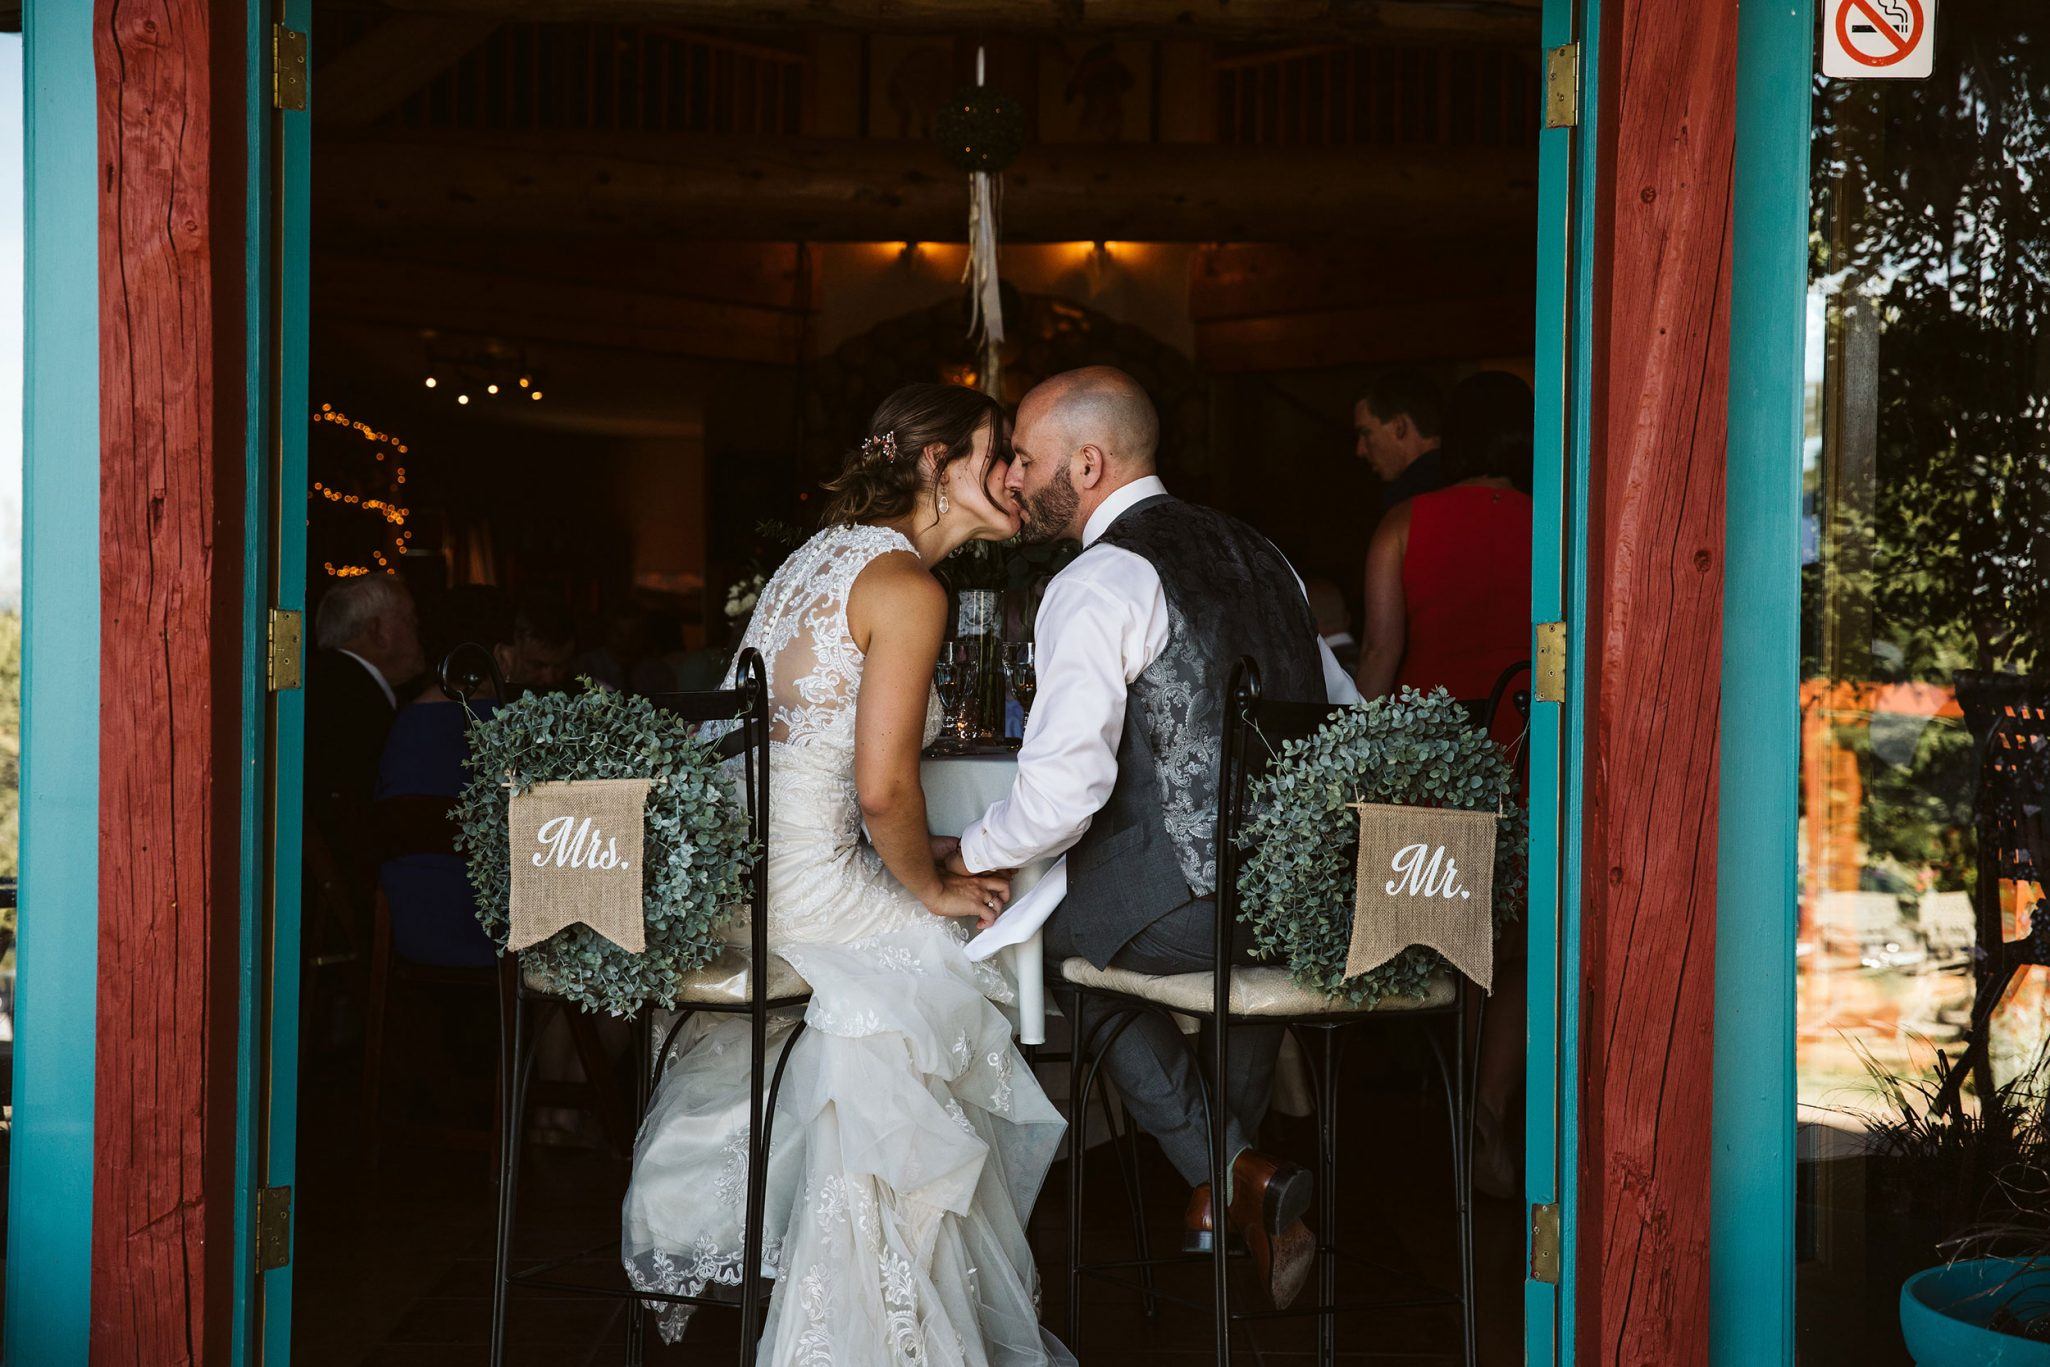 Bride & Groom | Durango Weddings Magazine